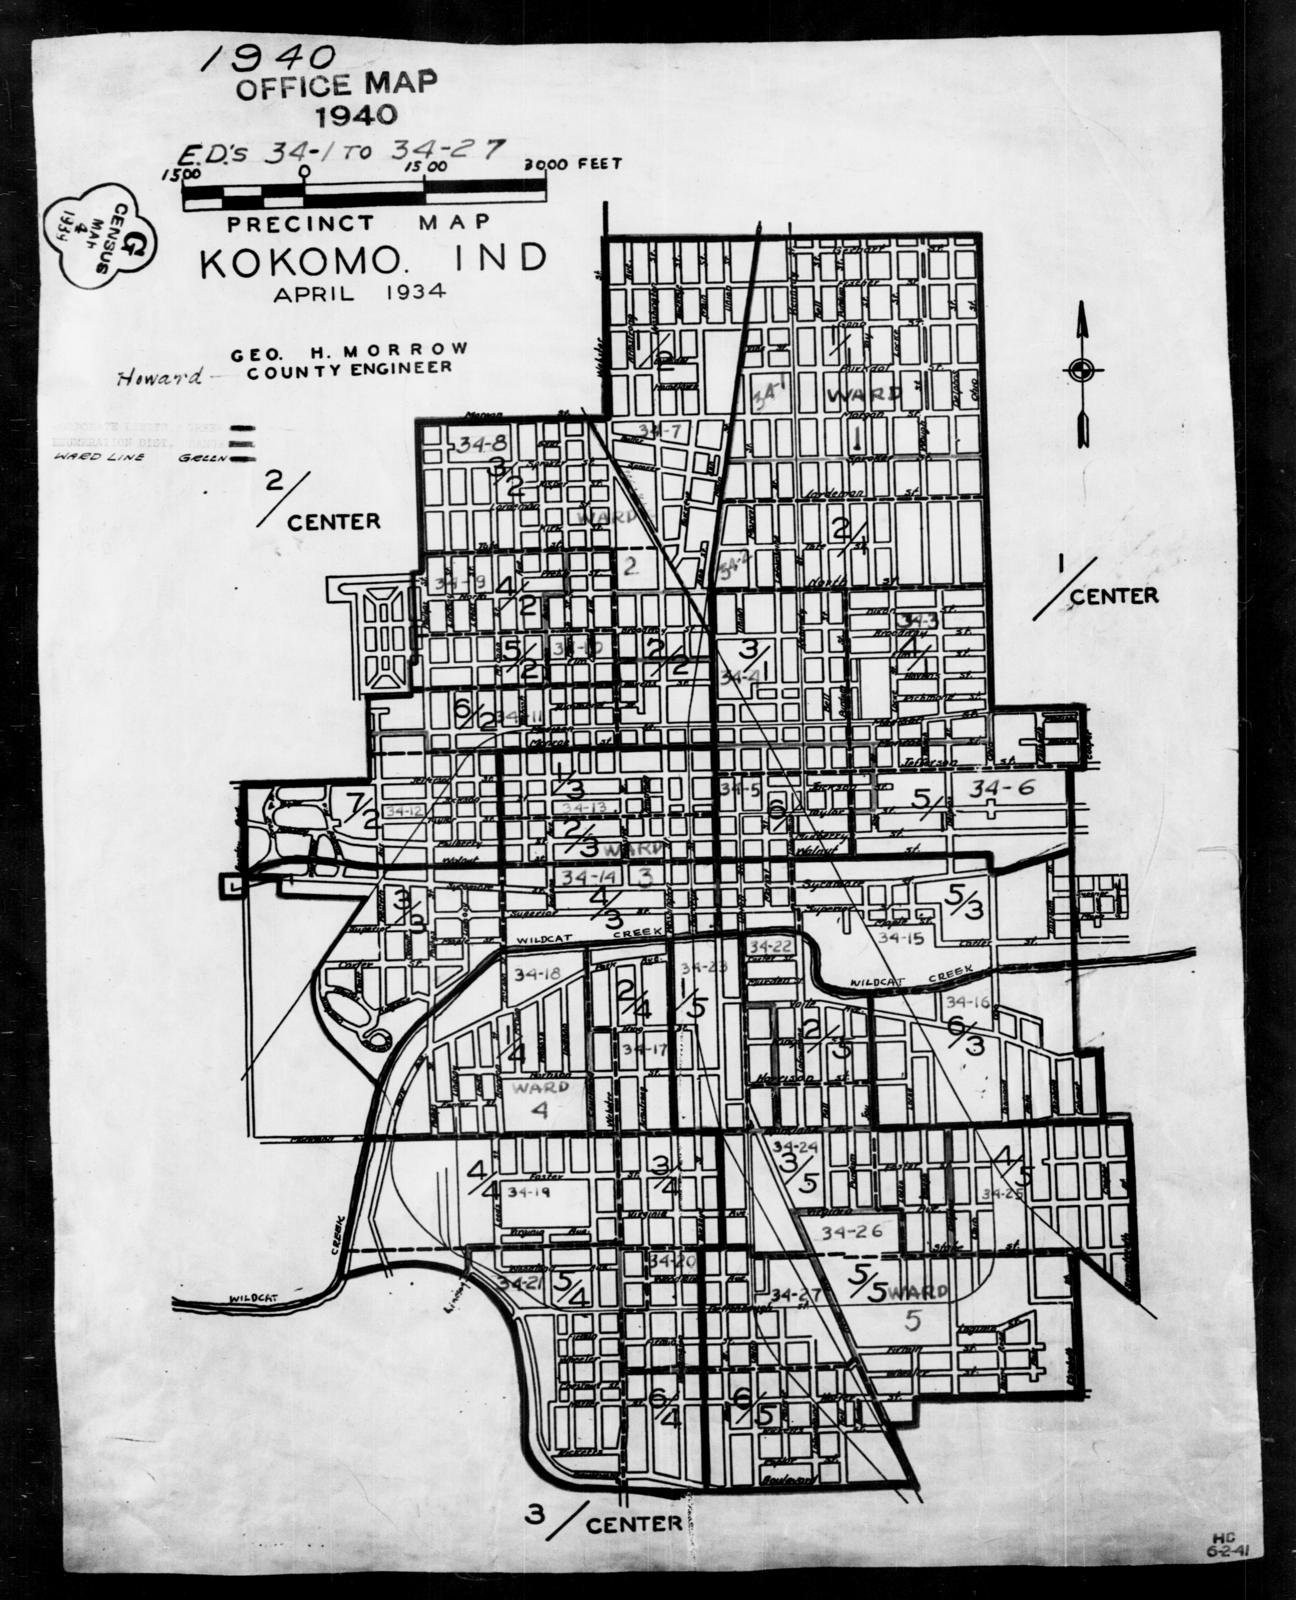 Howard County Indiana Map.1940 Census Enumeration District Maps Indiana Howard County